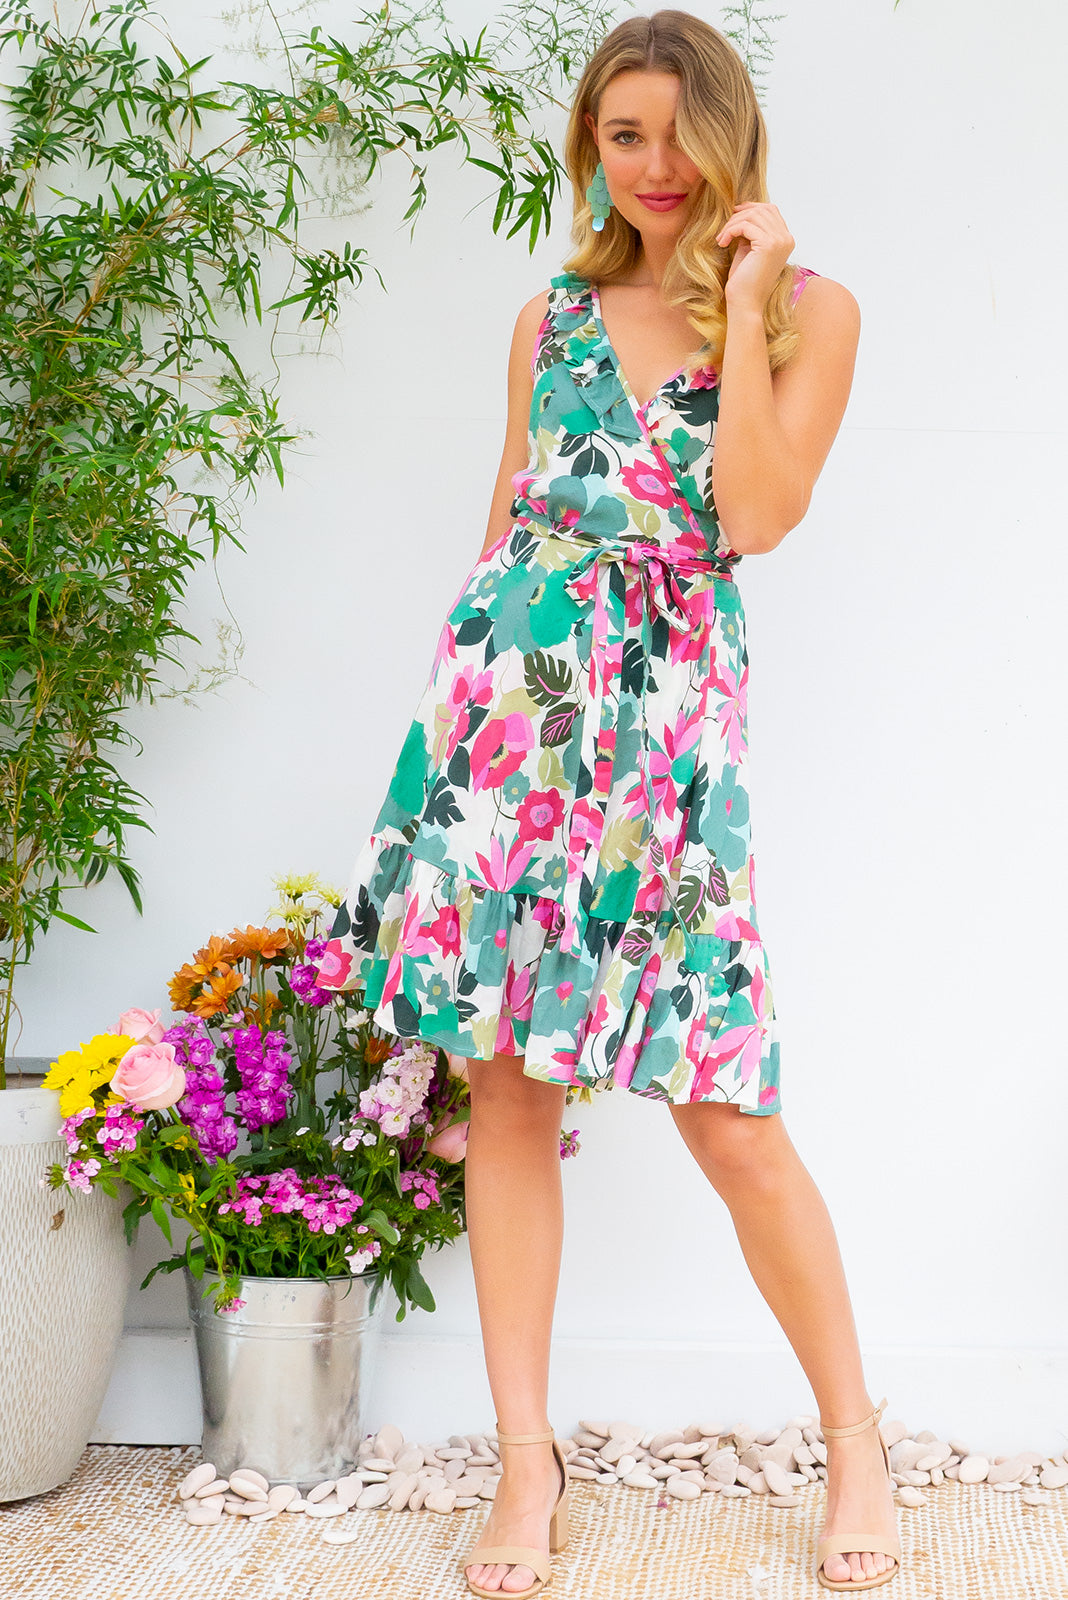 Paloma Bold and Beautiful Garden Wrap Dress features a flattering wrap around shape, sleeveless bodice with a frill and comes in a pink and green hued graphic floral print a cotton rayon blend